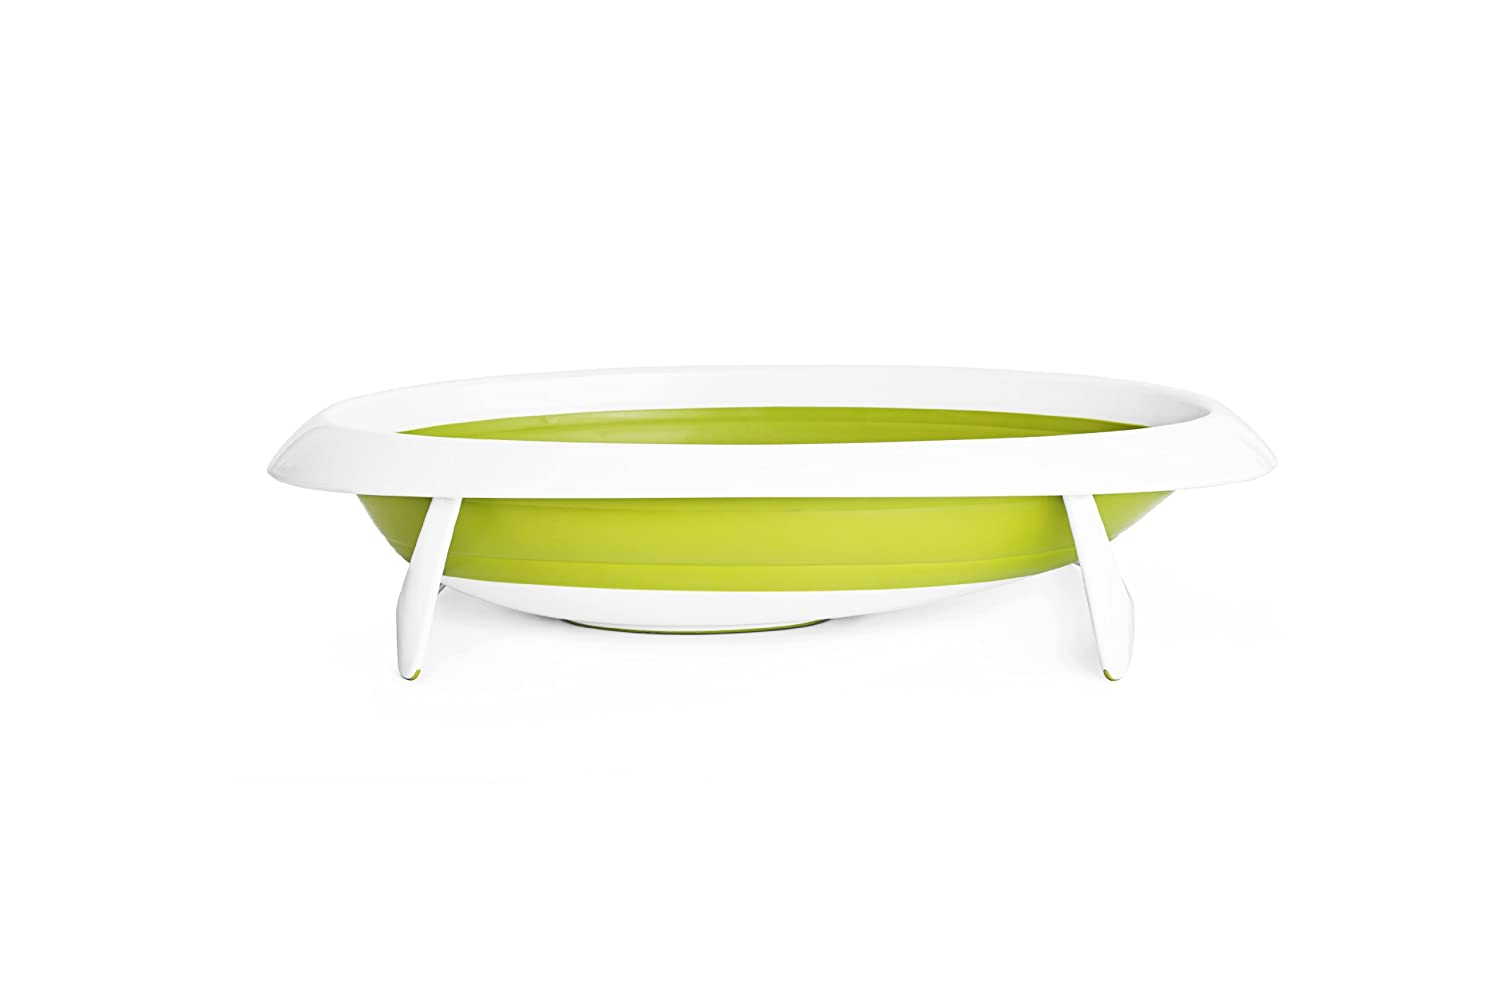 Amazon.com : Boon Naked Collapsible Baby Bathtub Green, Green ...